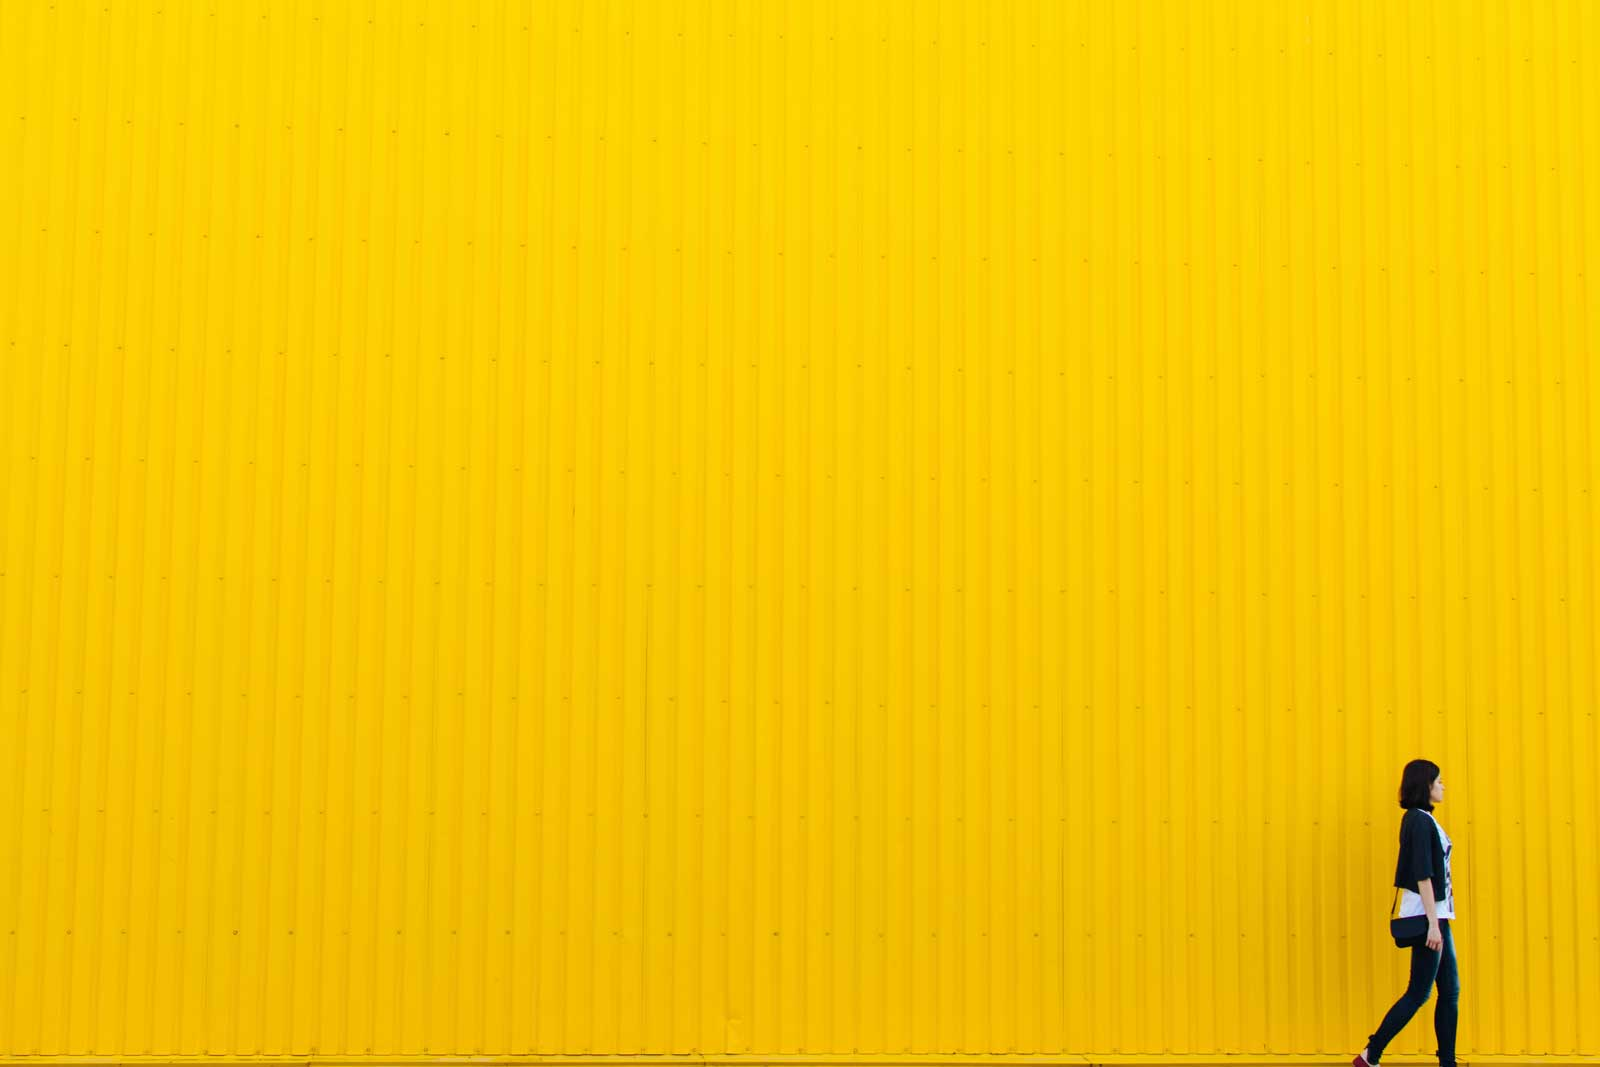 woman walking in frnt of a yellow wall